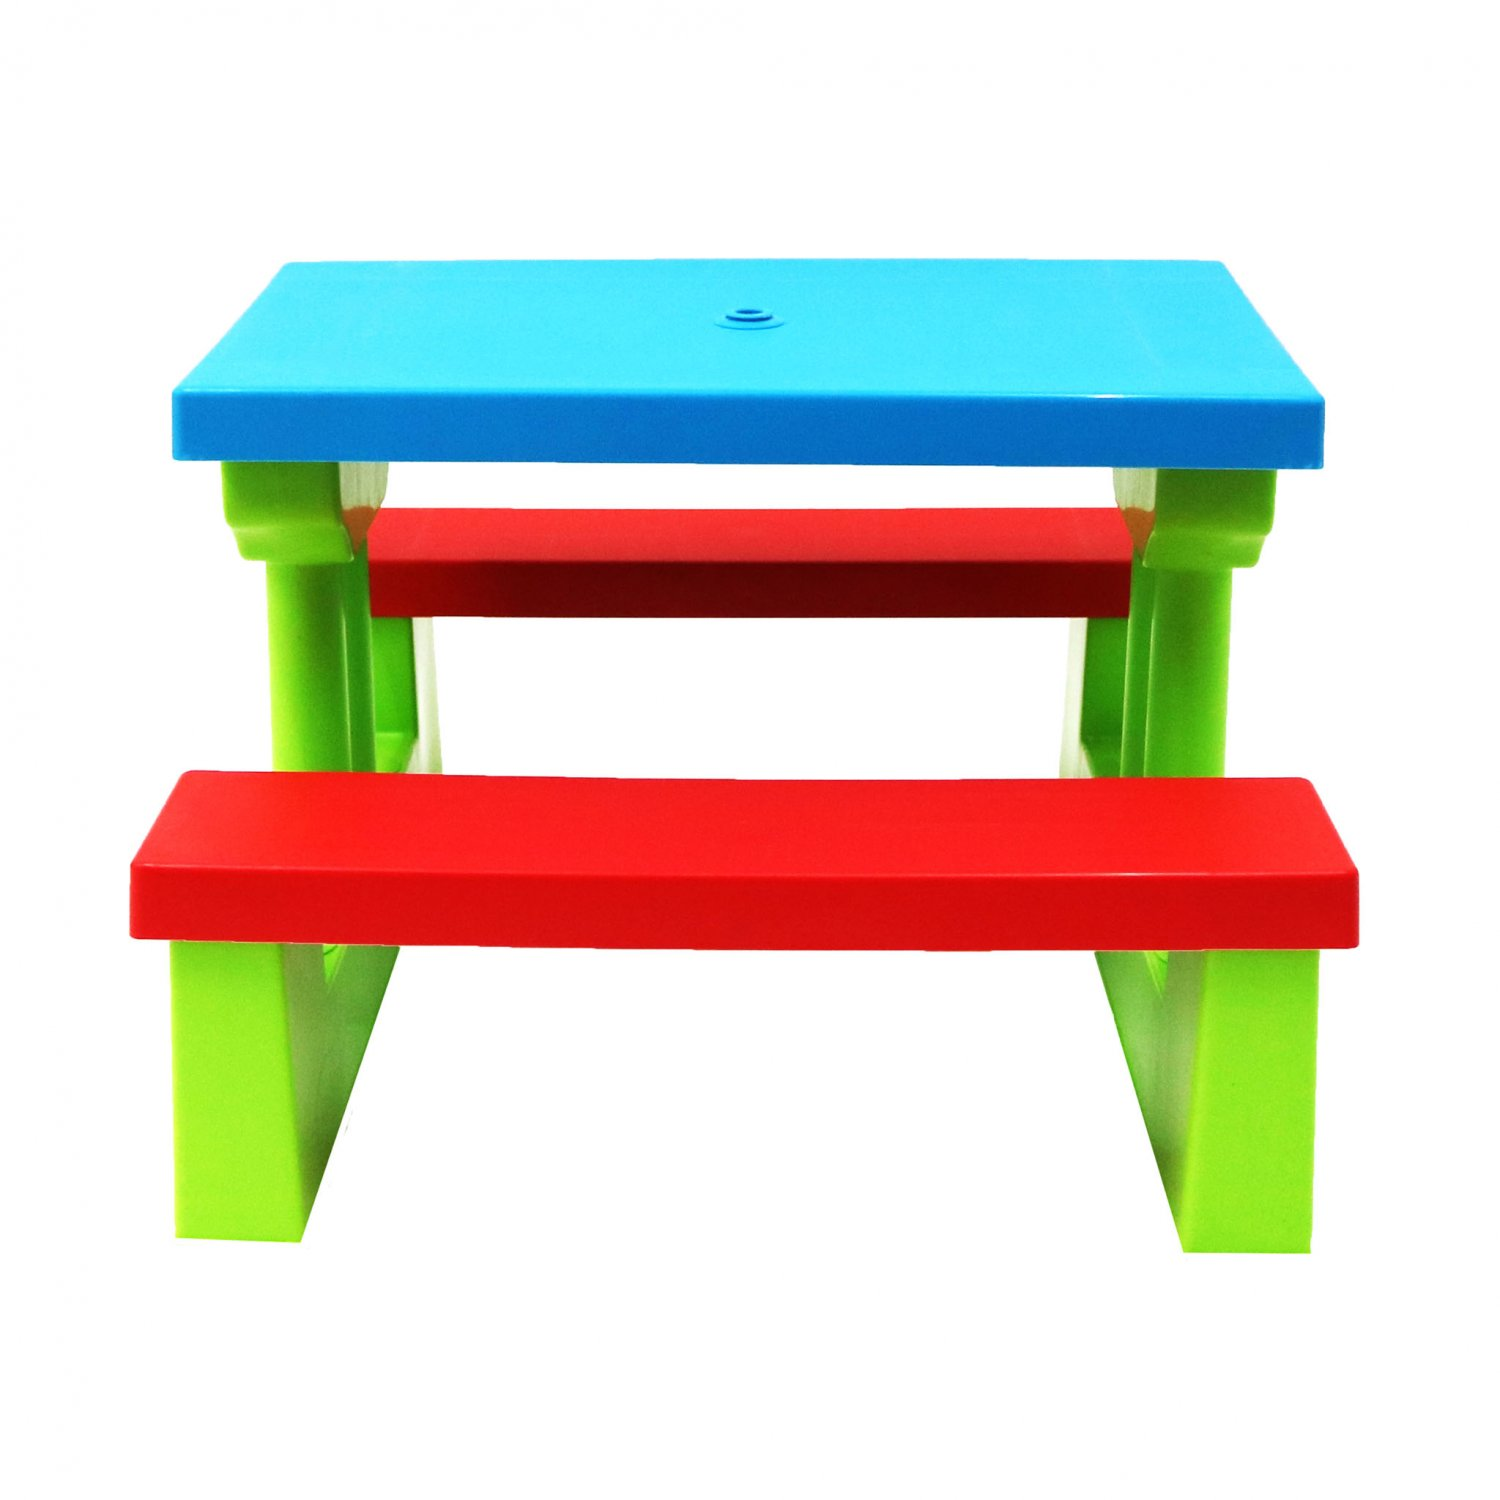 Kids Outdoor Table And Chairs Kids Childrens Picnic Bench Table Outdoor Furniture With